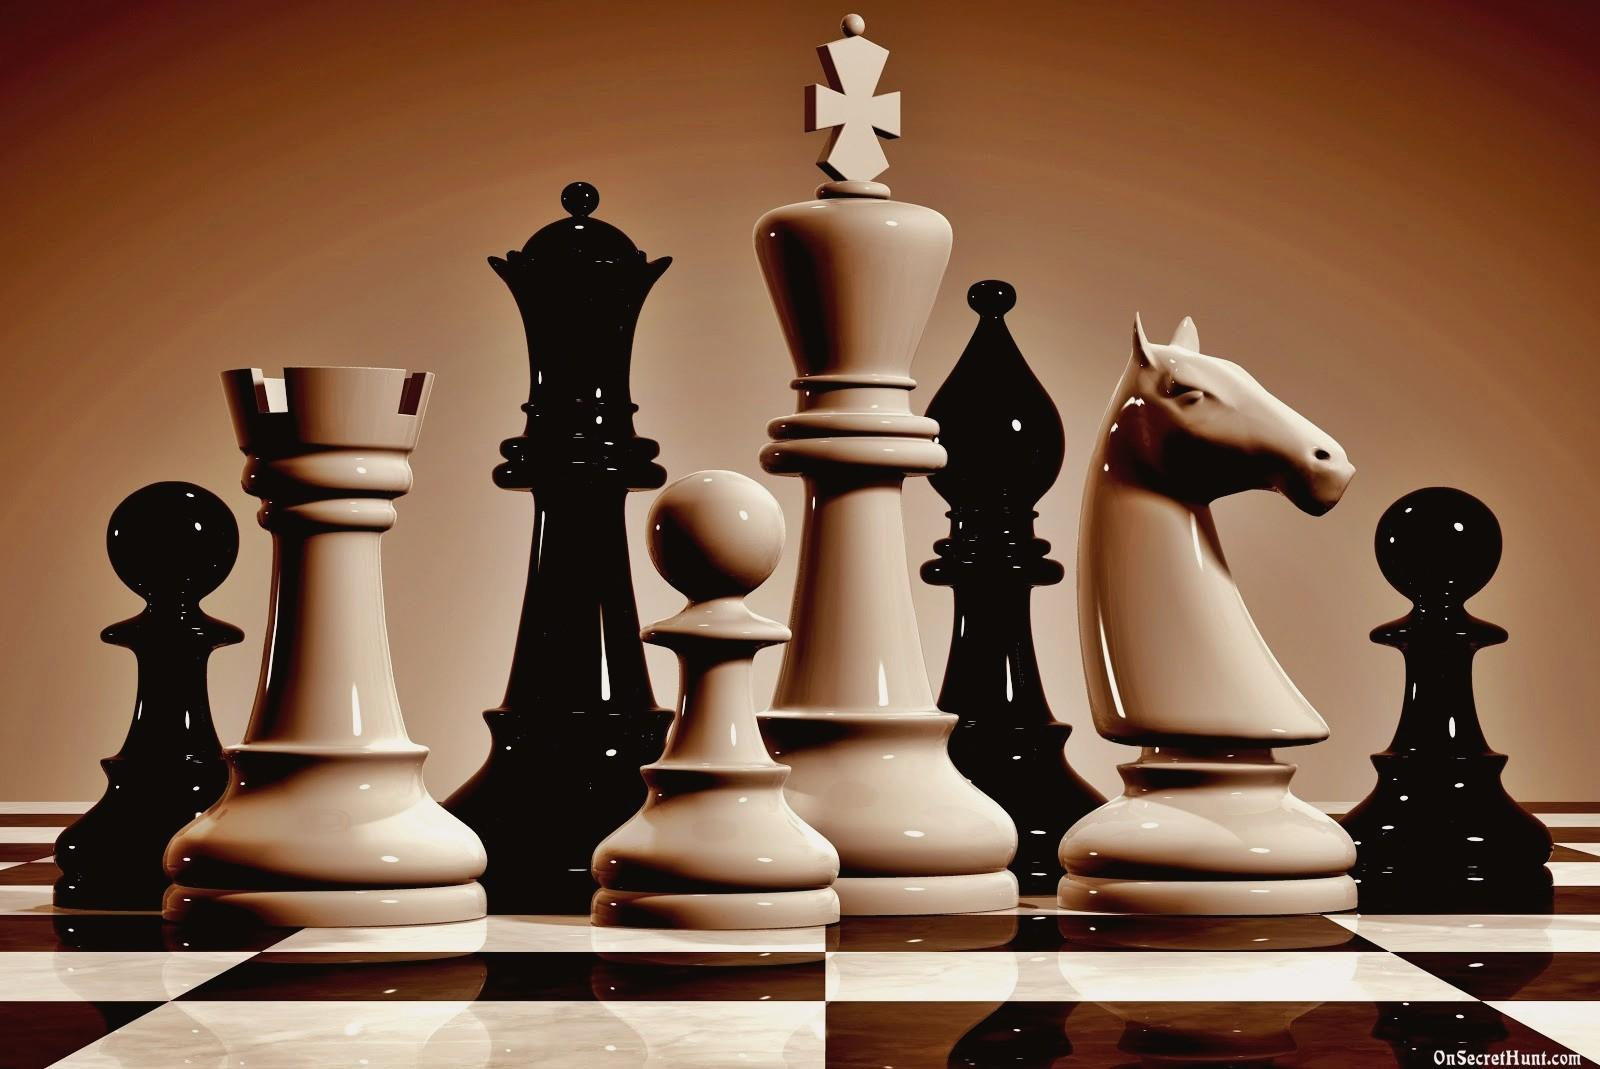 Chess is a game of inclusion and development of human talents